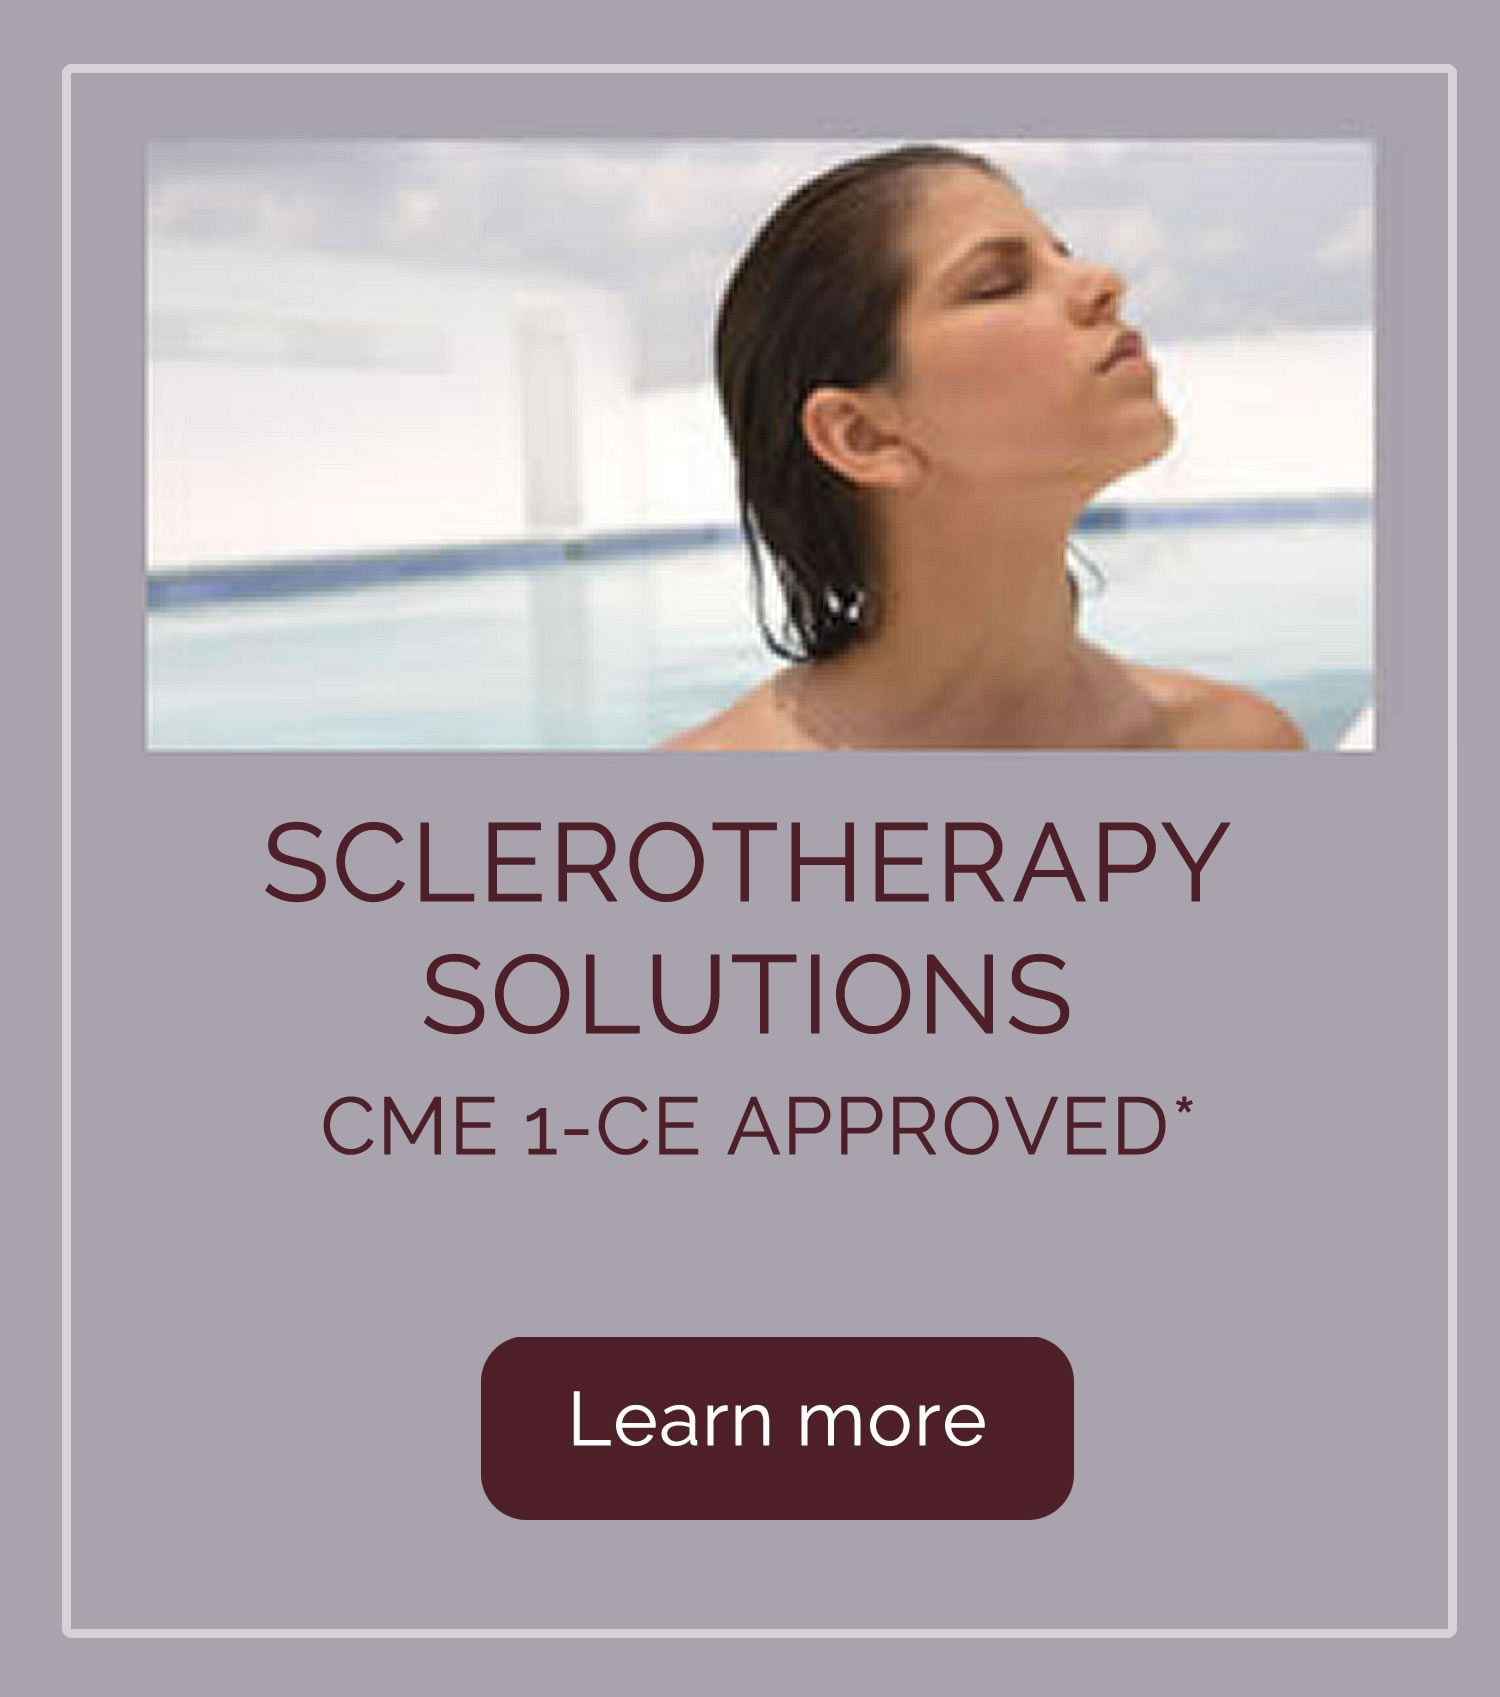 Sclerotherapy Solutions CME 1-Ce Approved